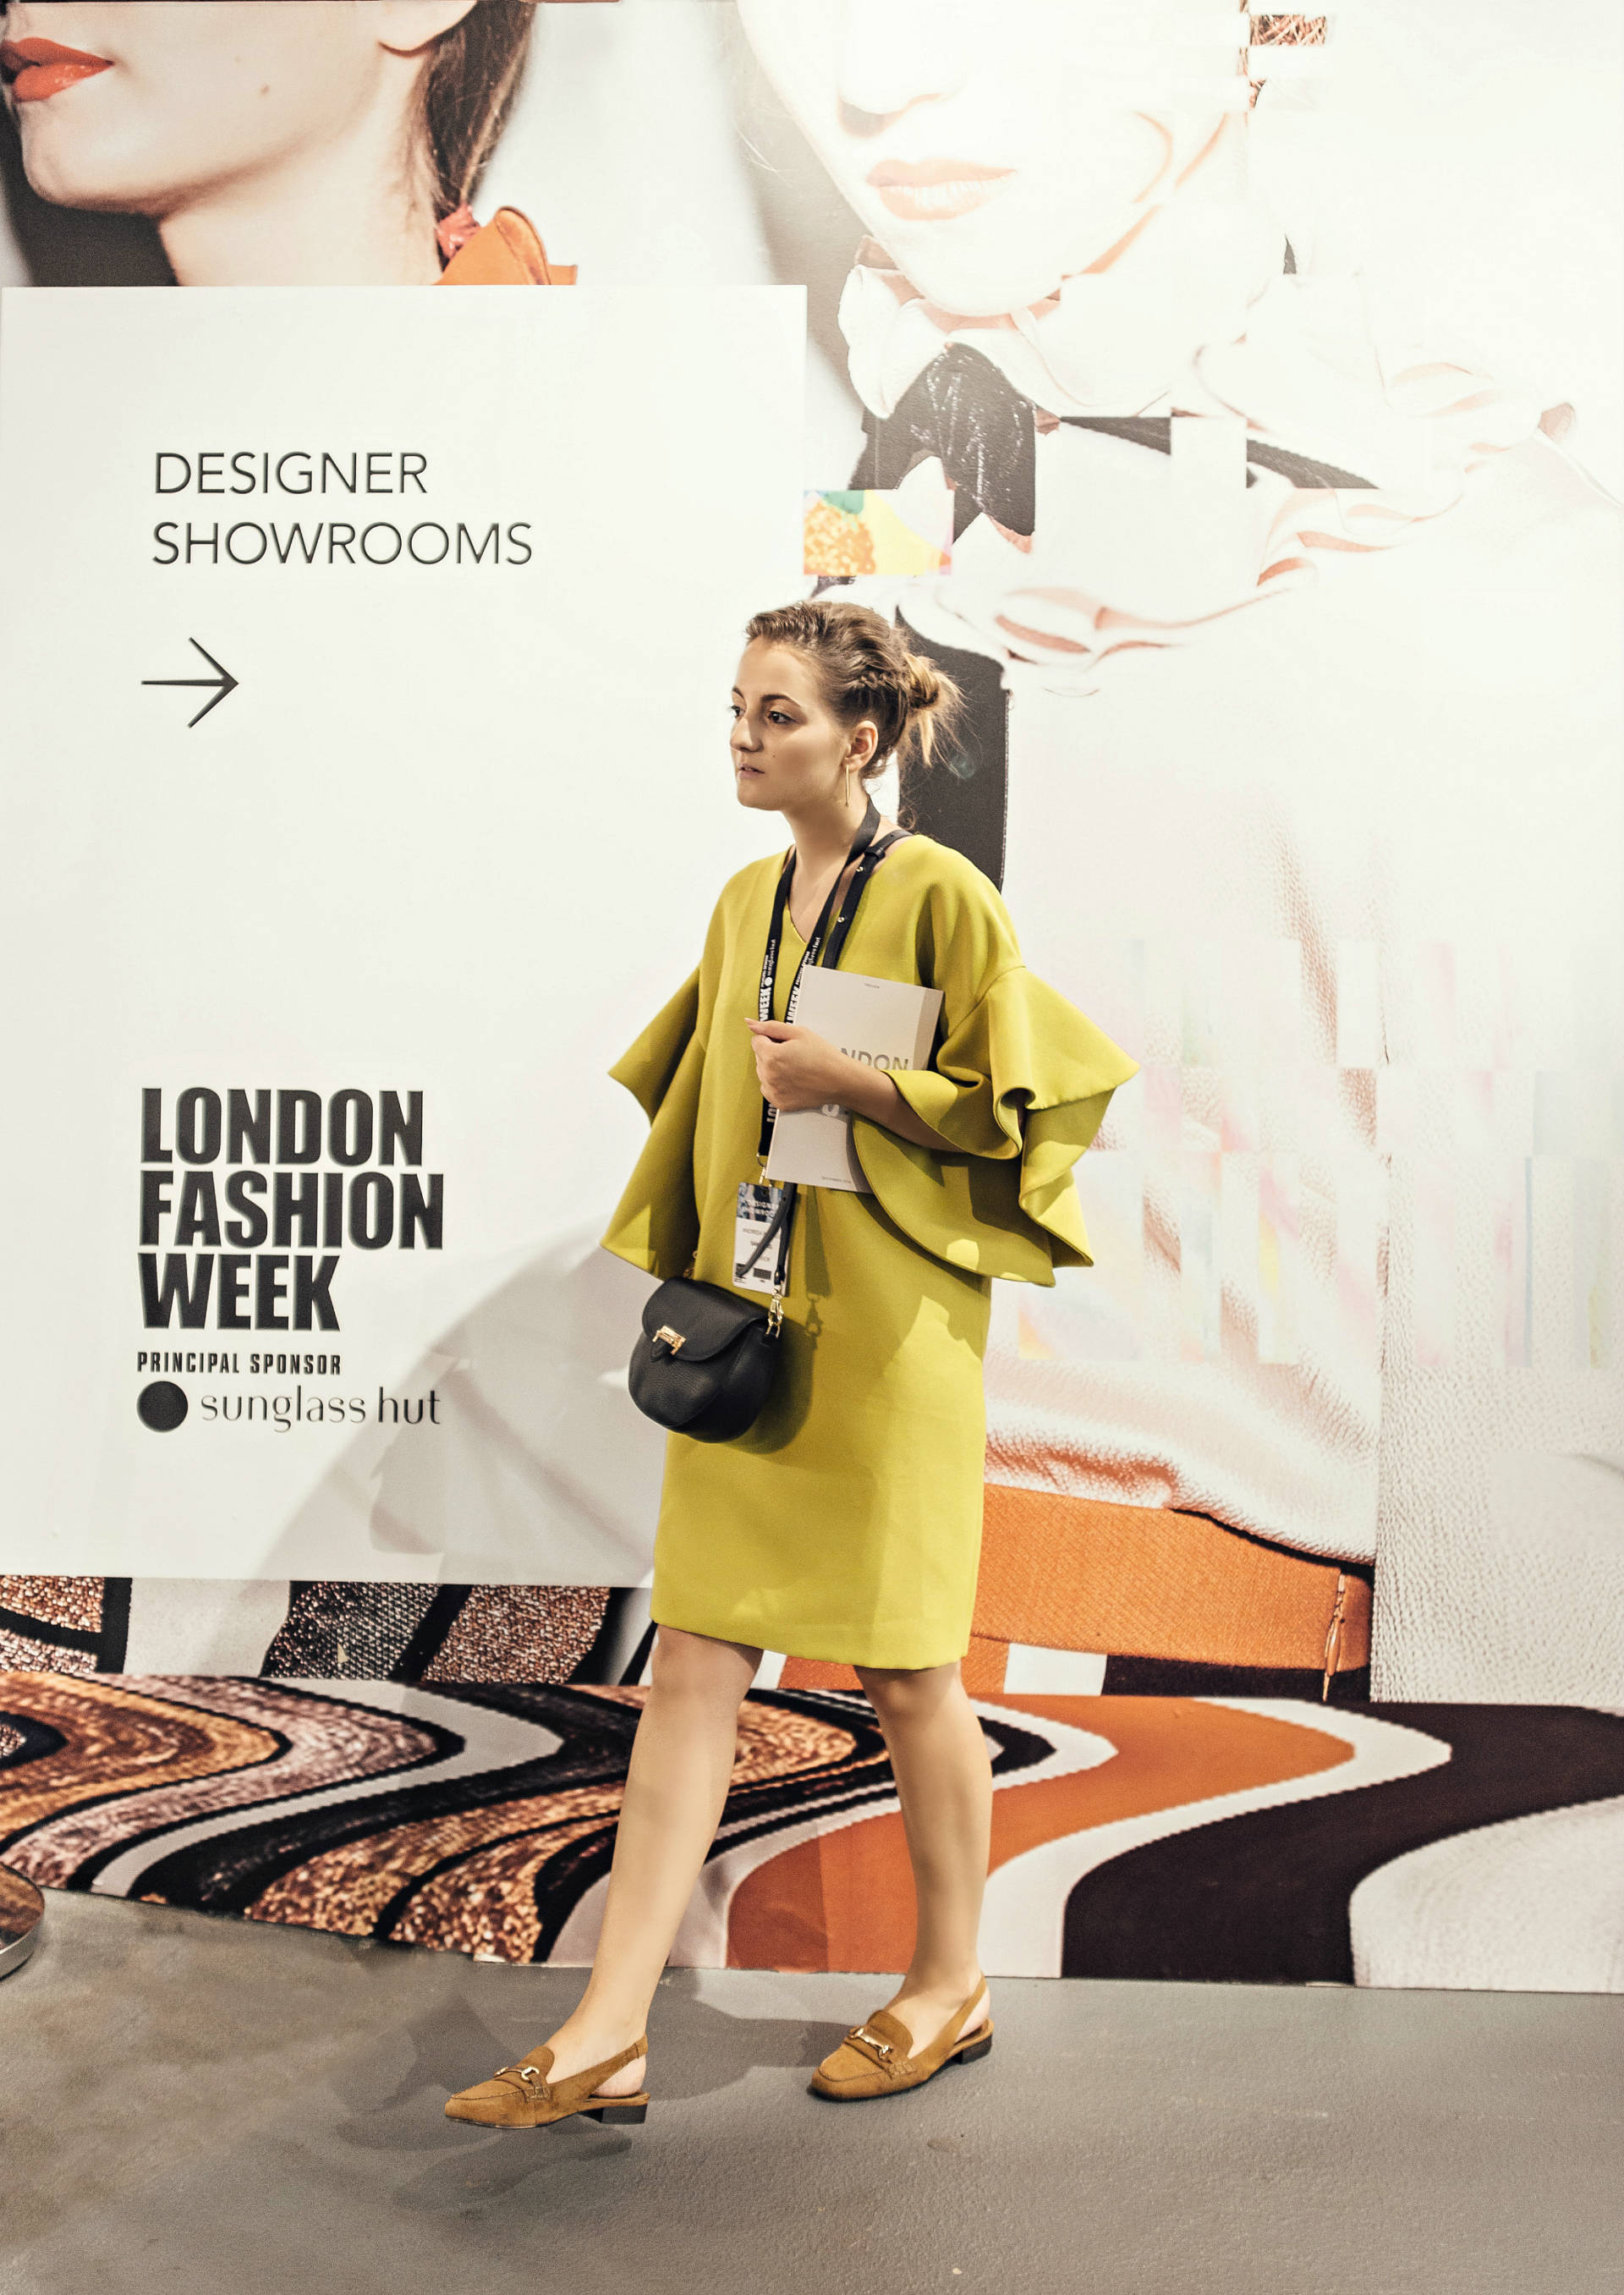 Samsung Serif TV partnership with London Fashion Week